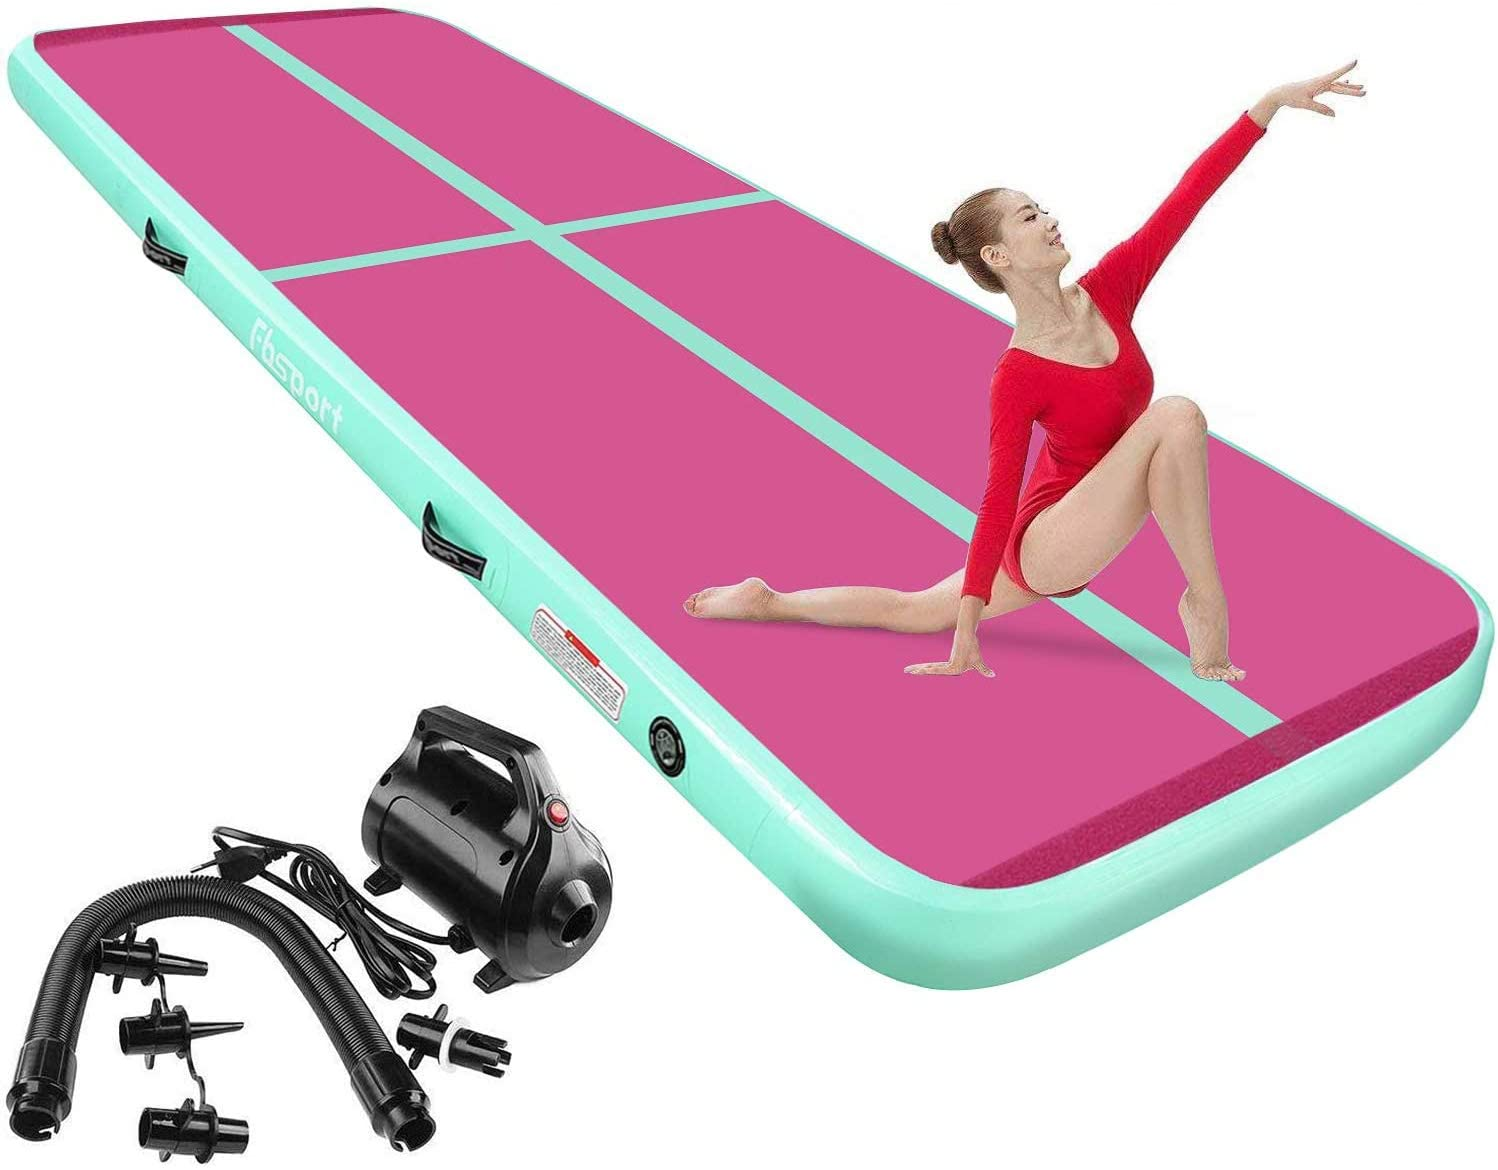 FBSPORT 8inches 4 inches Thickness Max 79% OFF 26ft Max 67% OFF Inflatable Track Air Mat